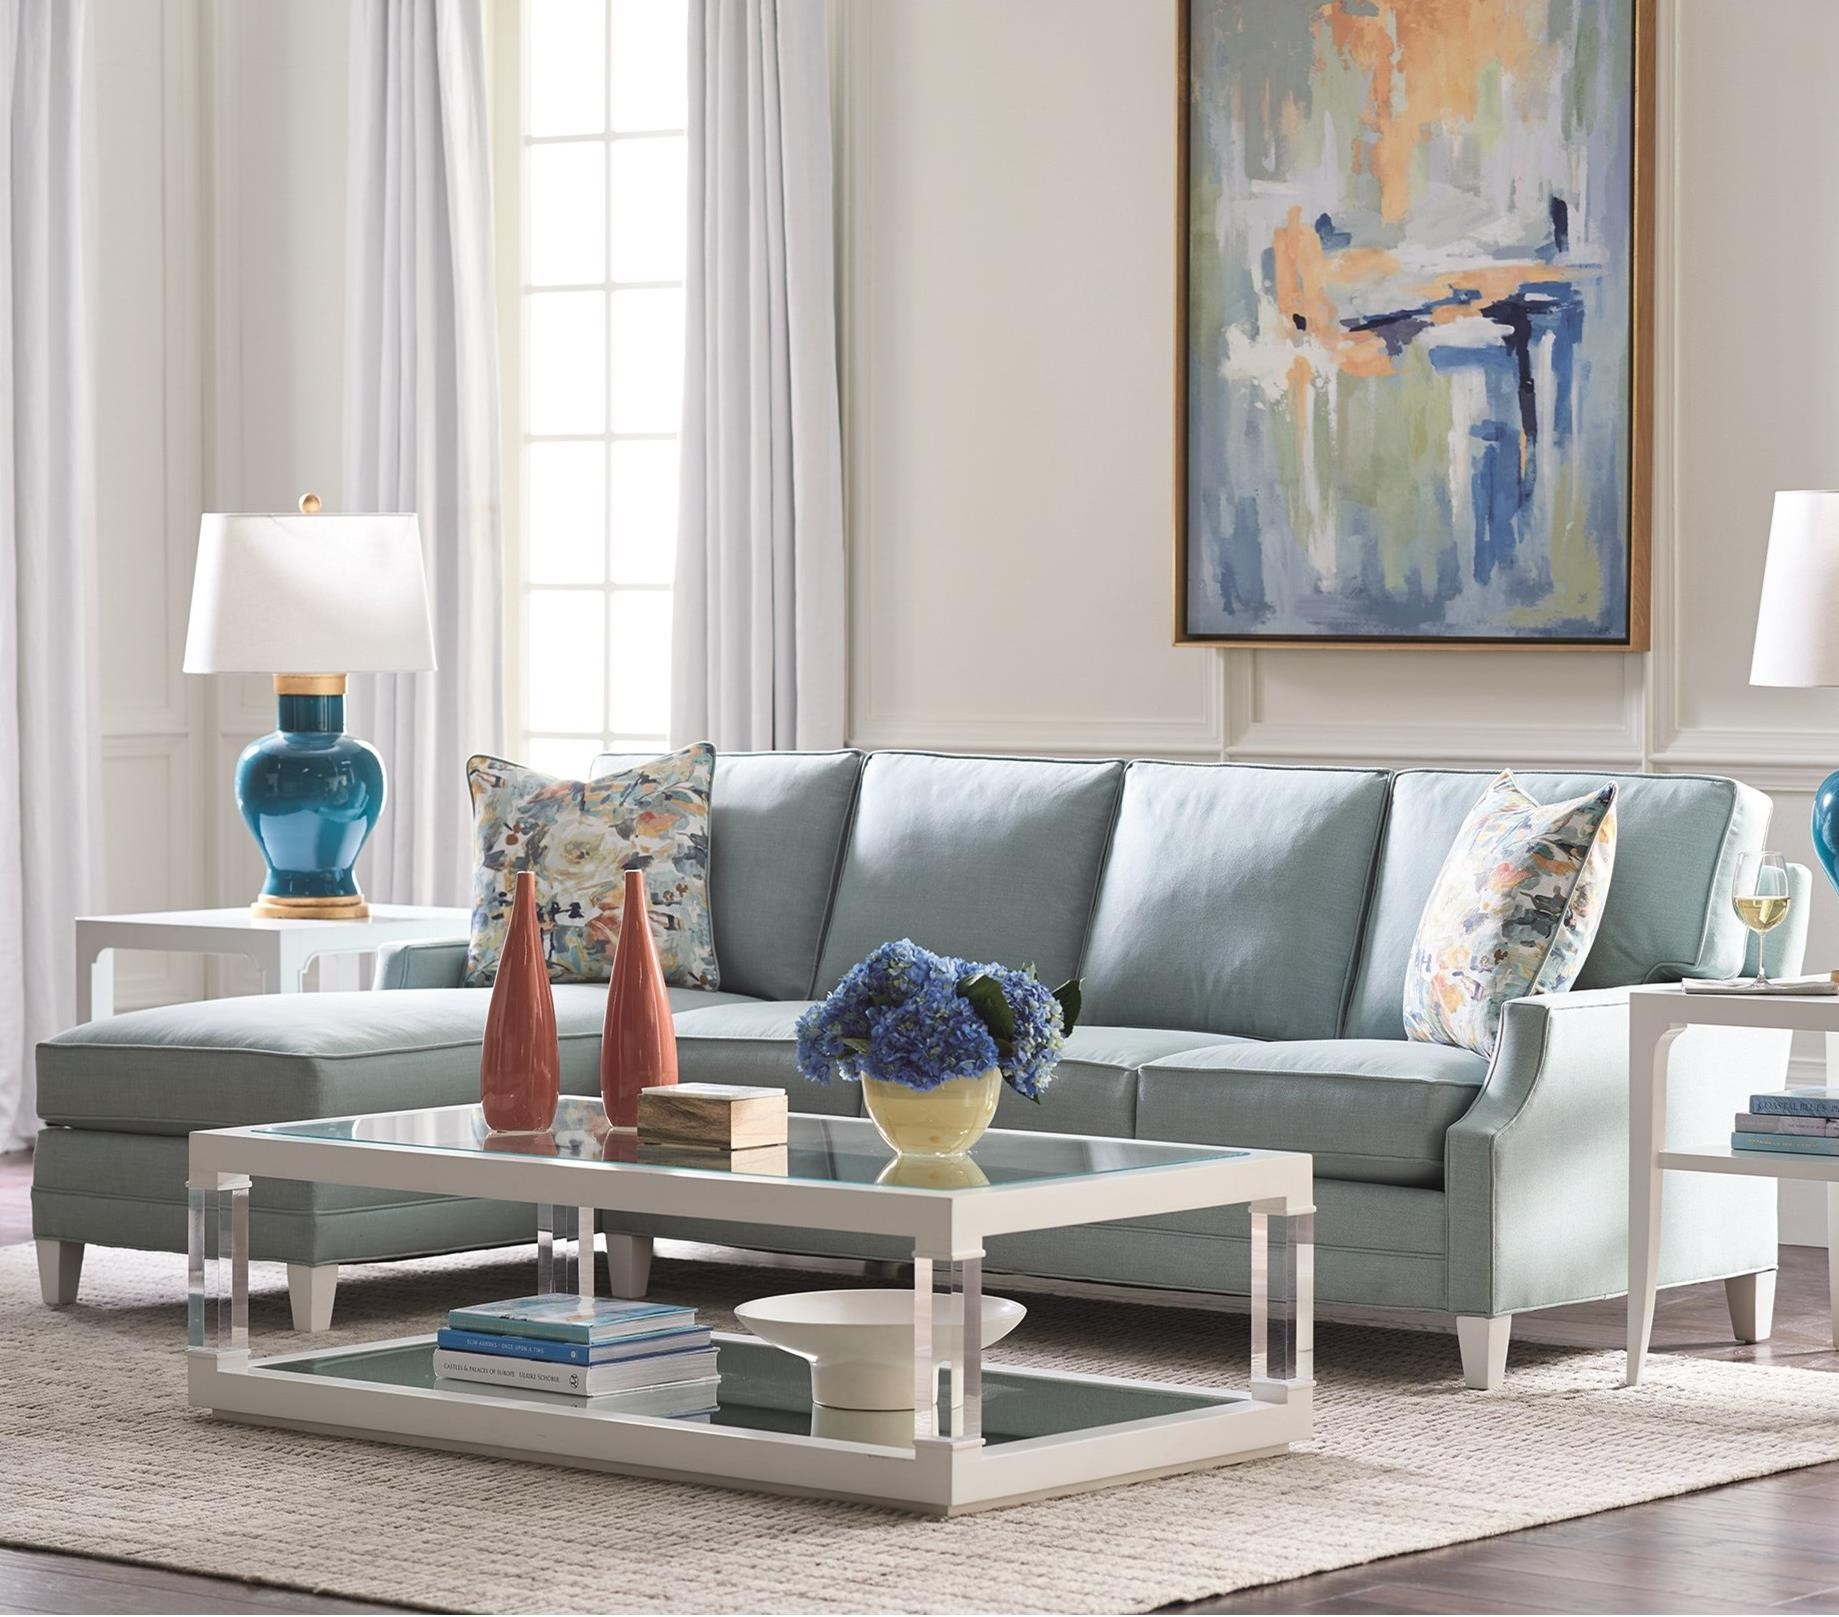 Personal Design Series Customizable Bristol 2-Piece Chaise Sofa by Lexington at Baer's Furniture